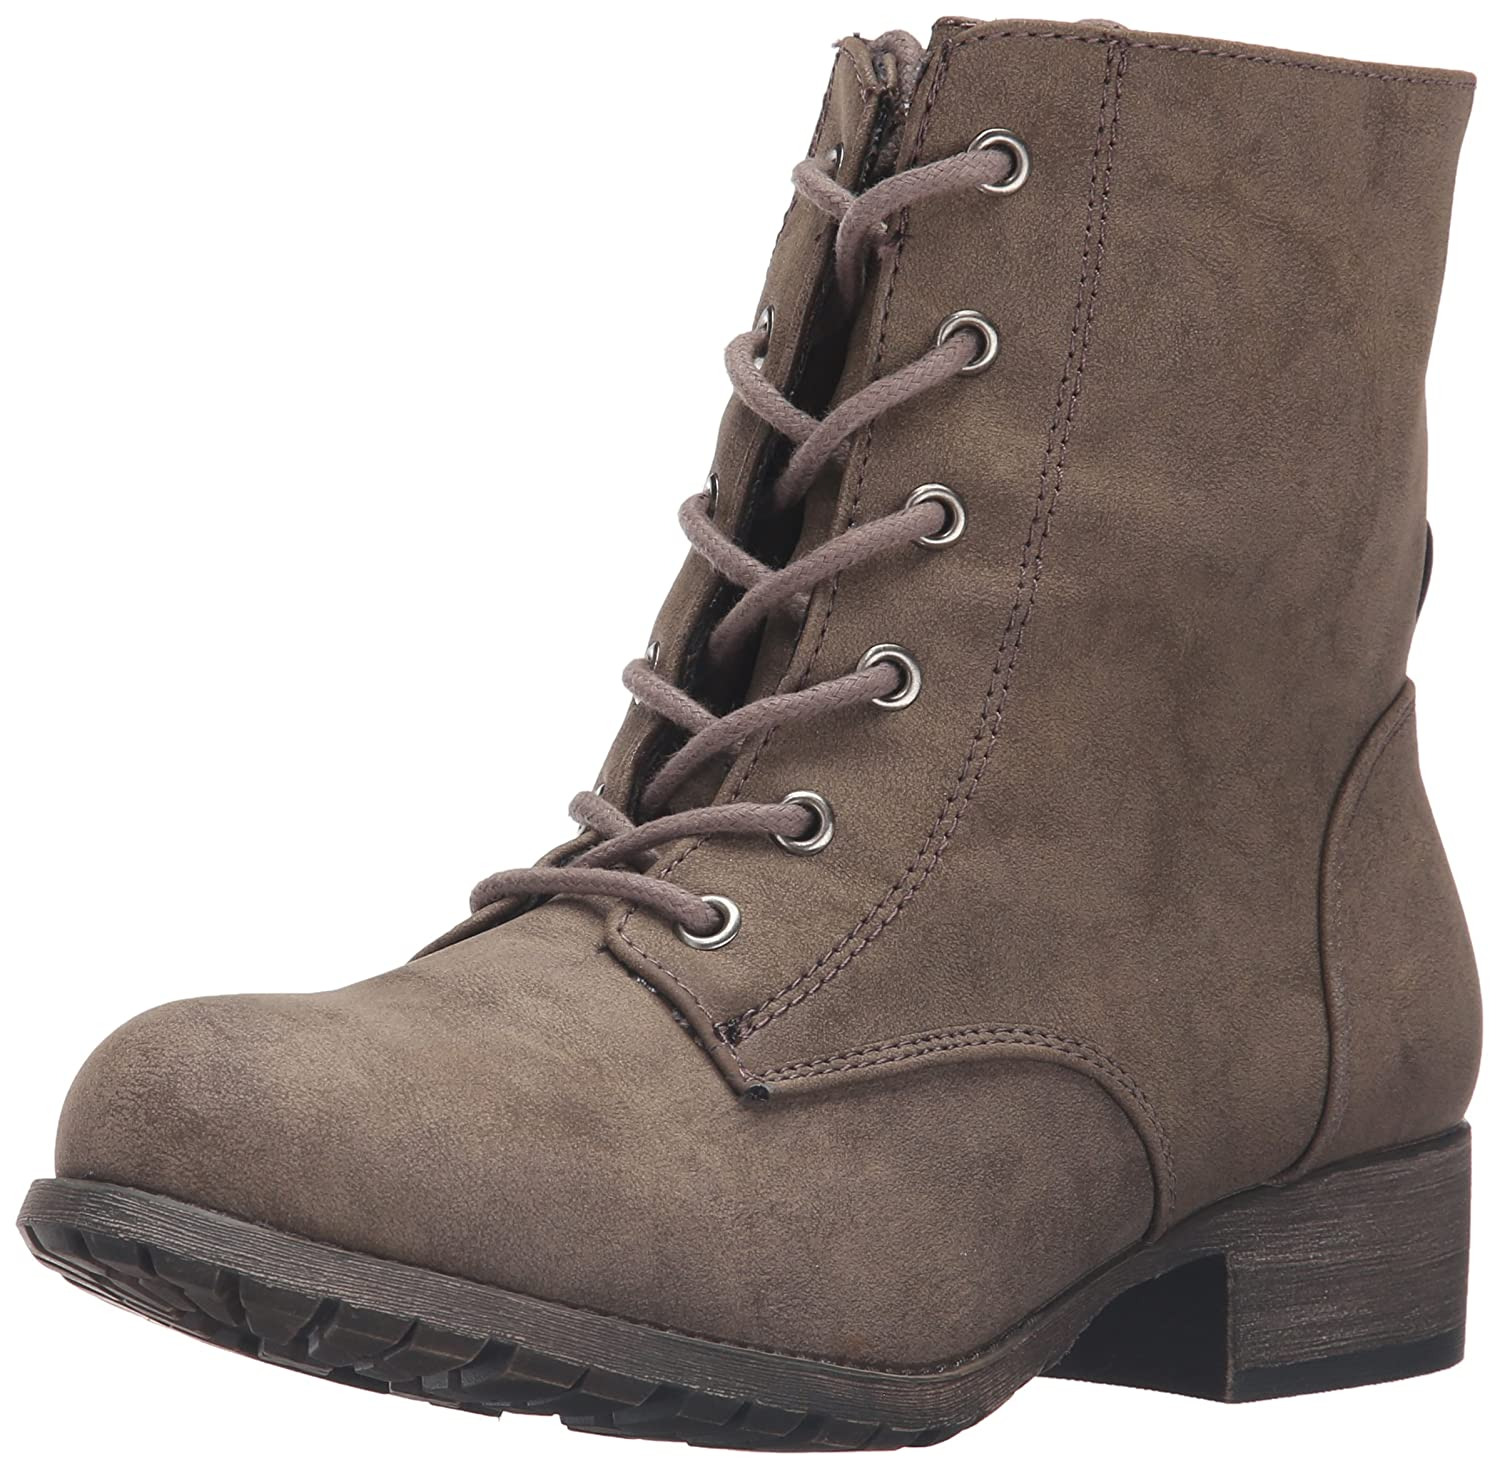 Jellypop Women's Freddy Engineer Boot B01CV9YTY0 8.5 B(M) US|Taupe Distress